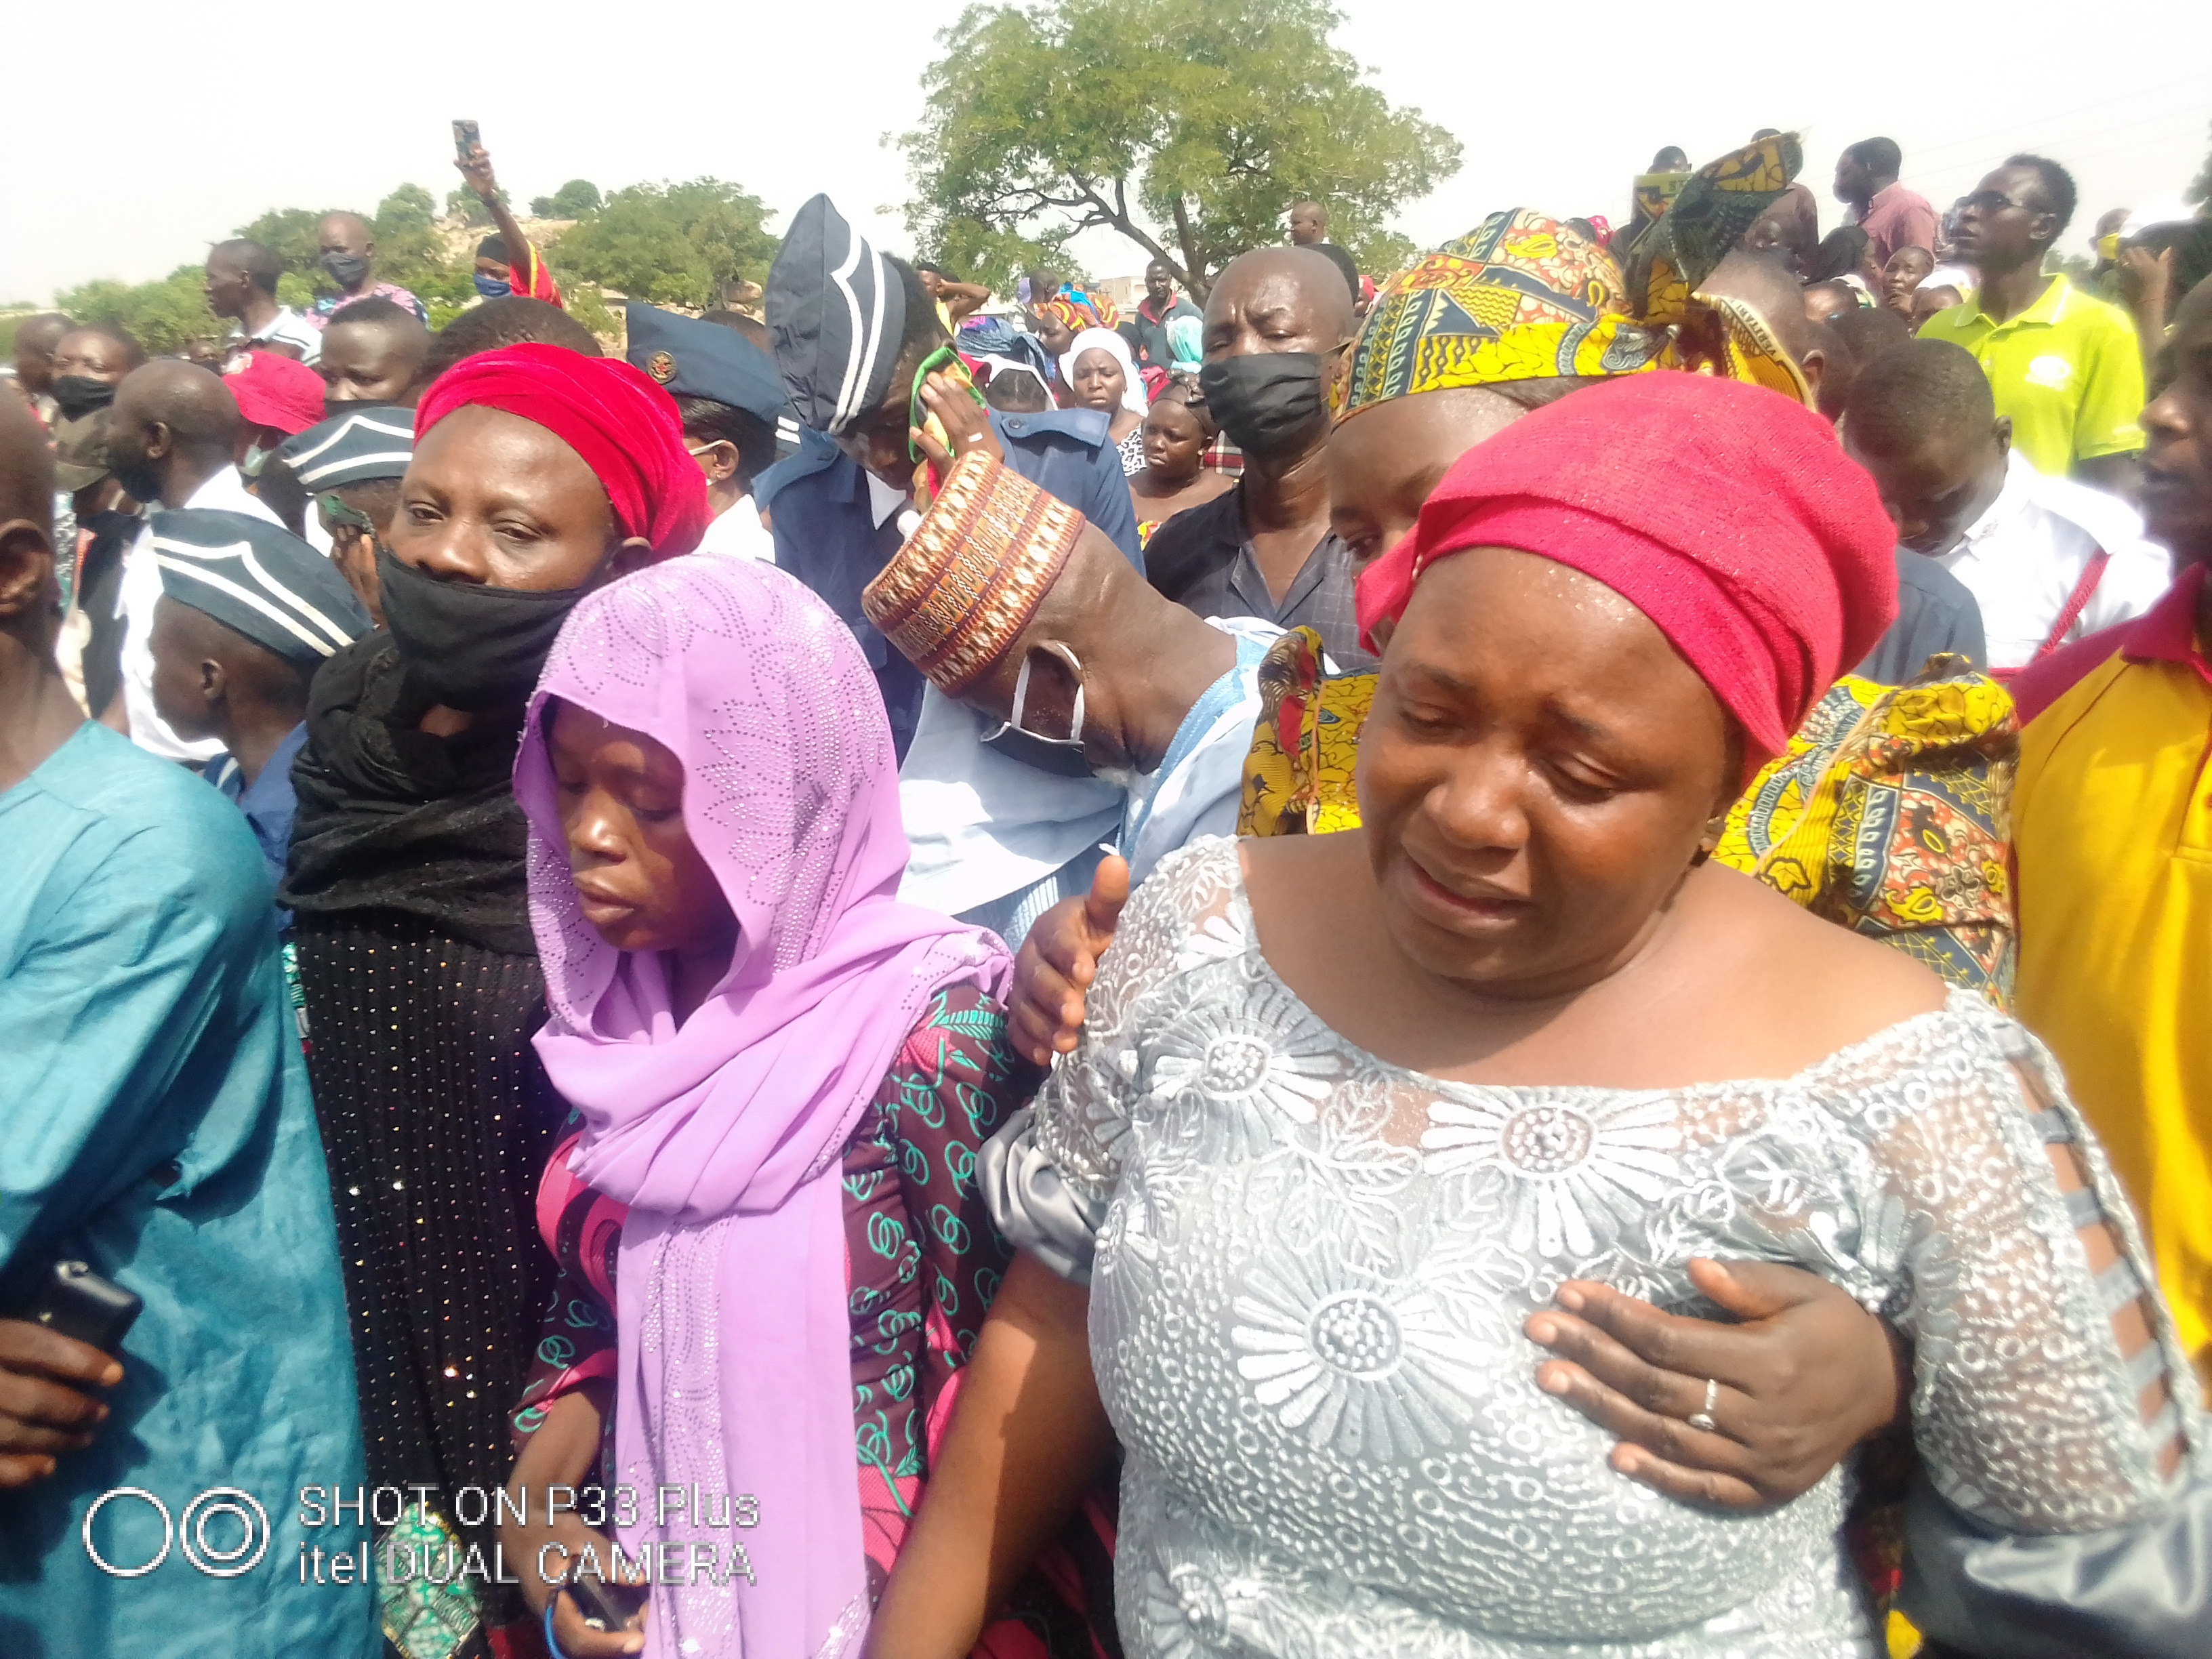 Bauchi: Tearful funeral for security guard murdered over missing phone